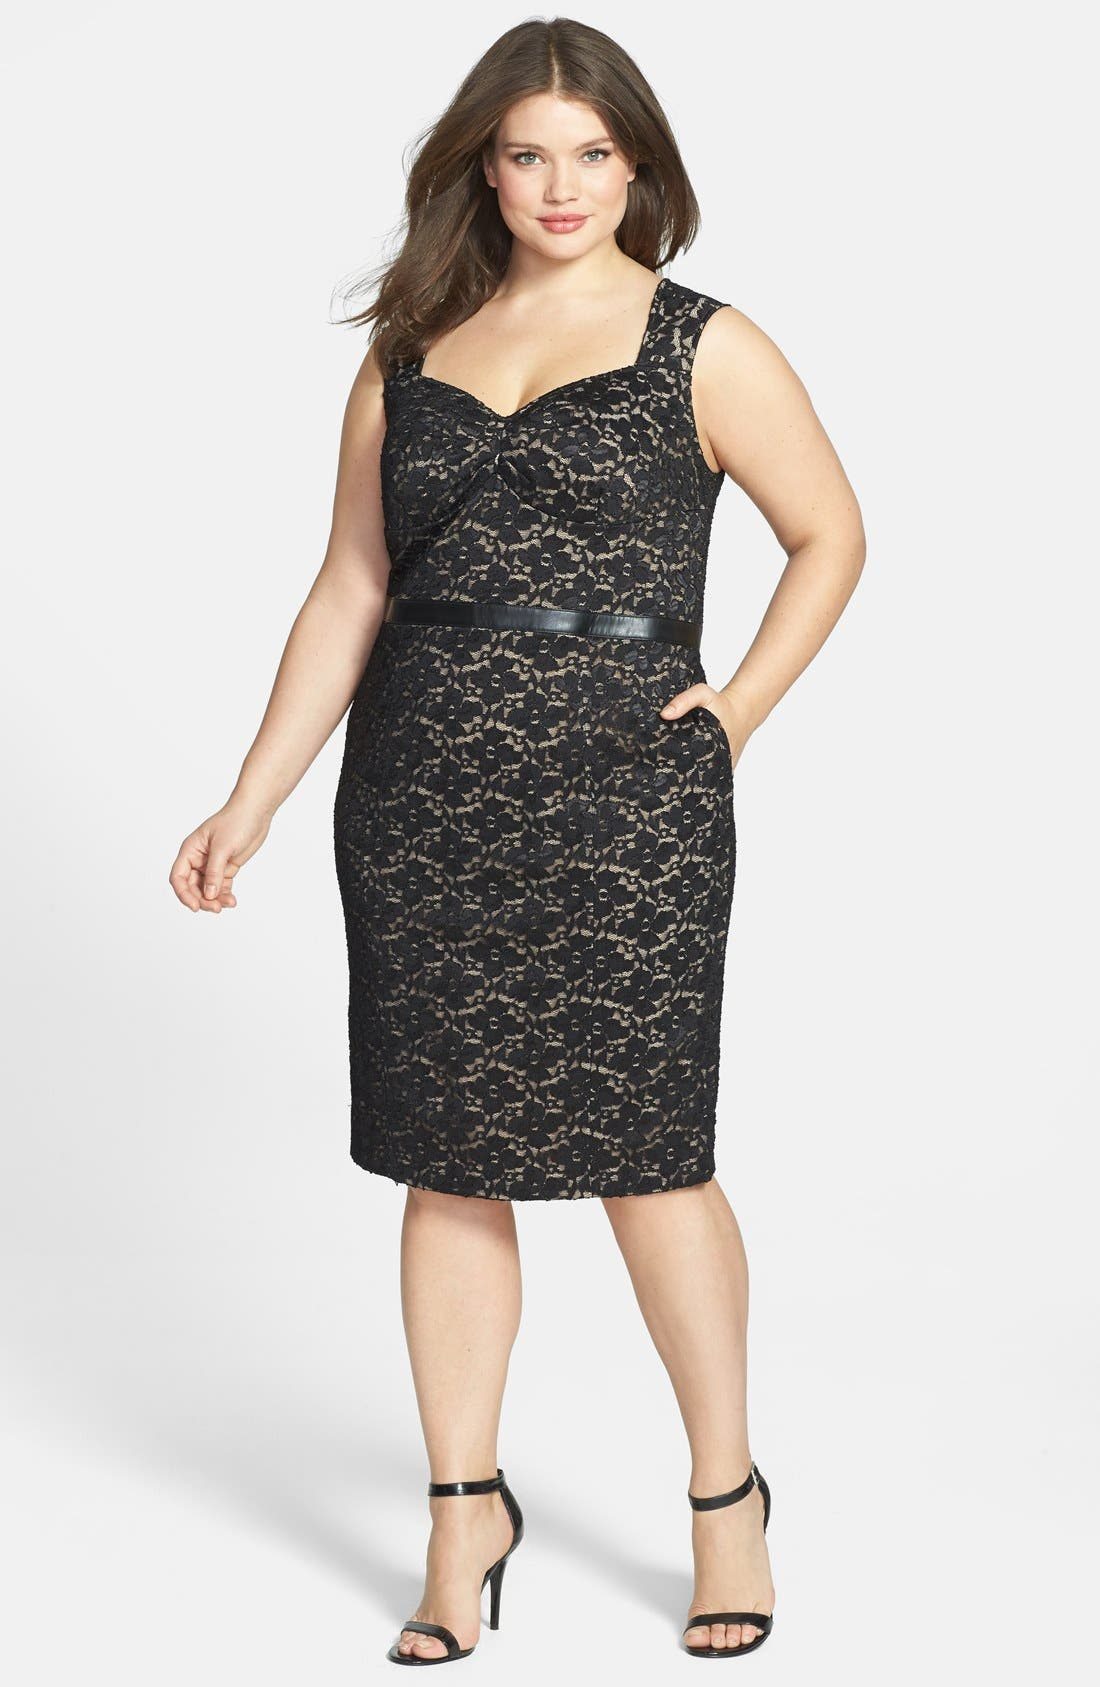 Alternate Image 1 Selected - ABS by Allen Schwartz Leather Waist Lace Sheath Dress (Plus Size)